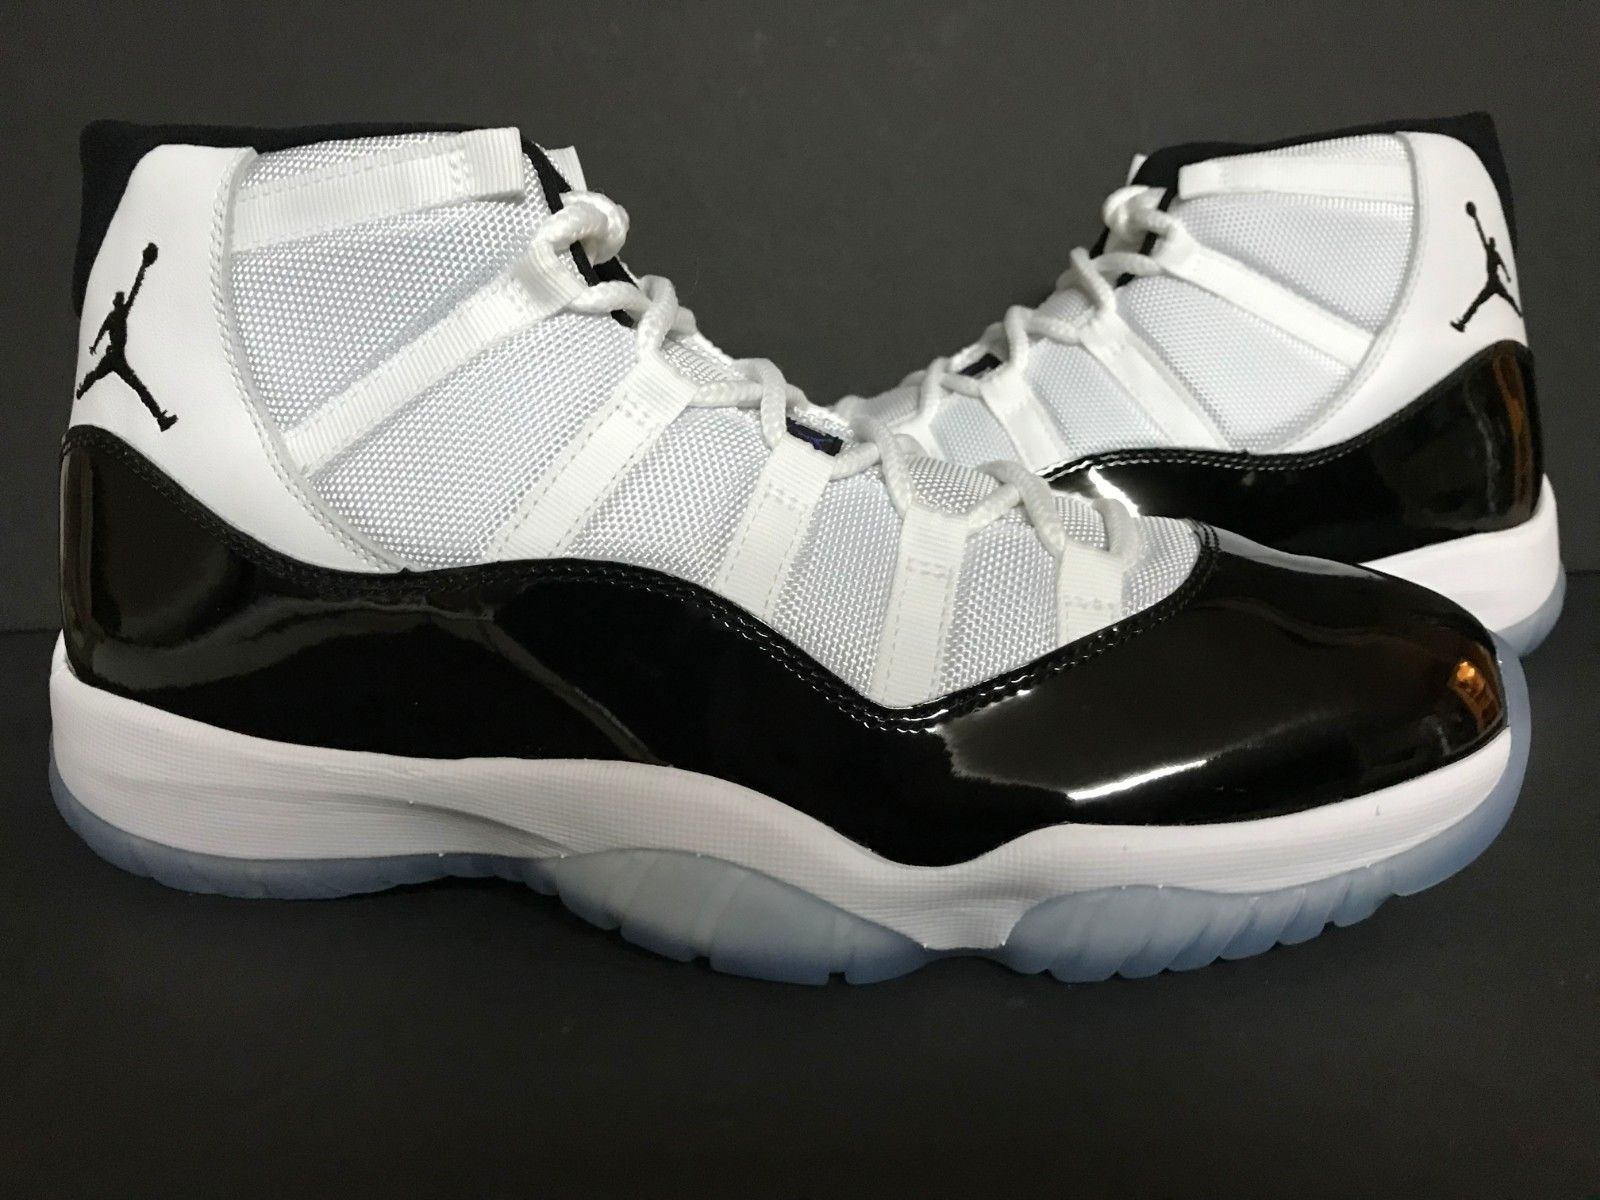 acd52c96a87141 Details about NEW DS 2018 Air Jordan Retro 11 Concord White Black ...